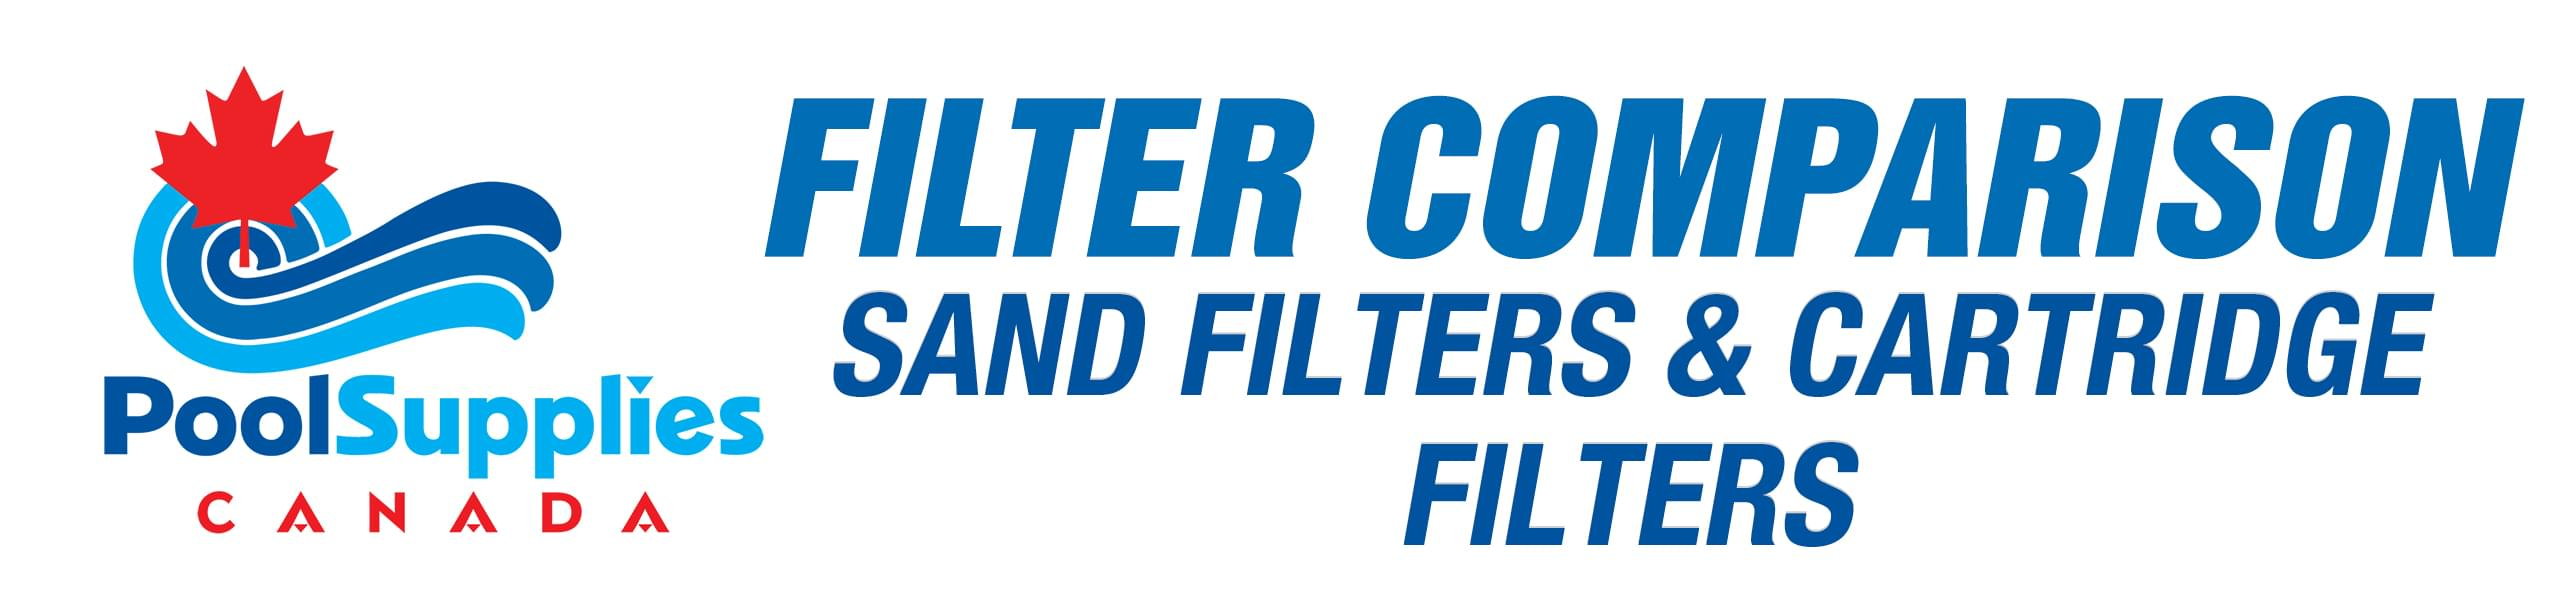 Compare Sand Filters and Cartridge Filters